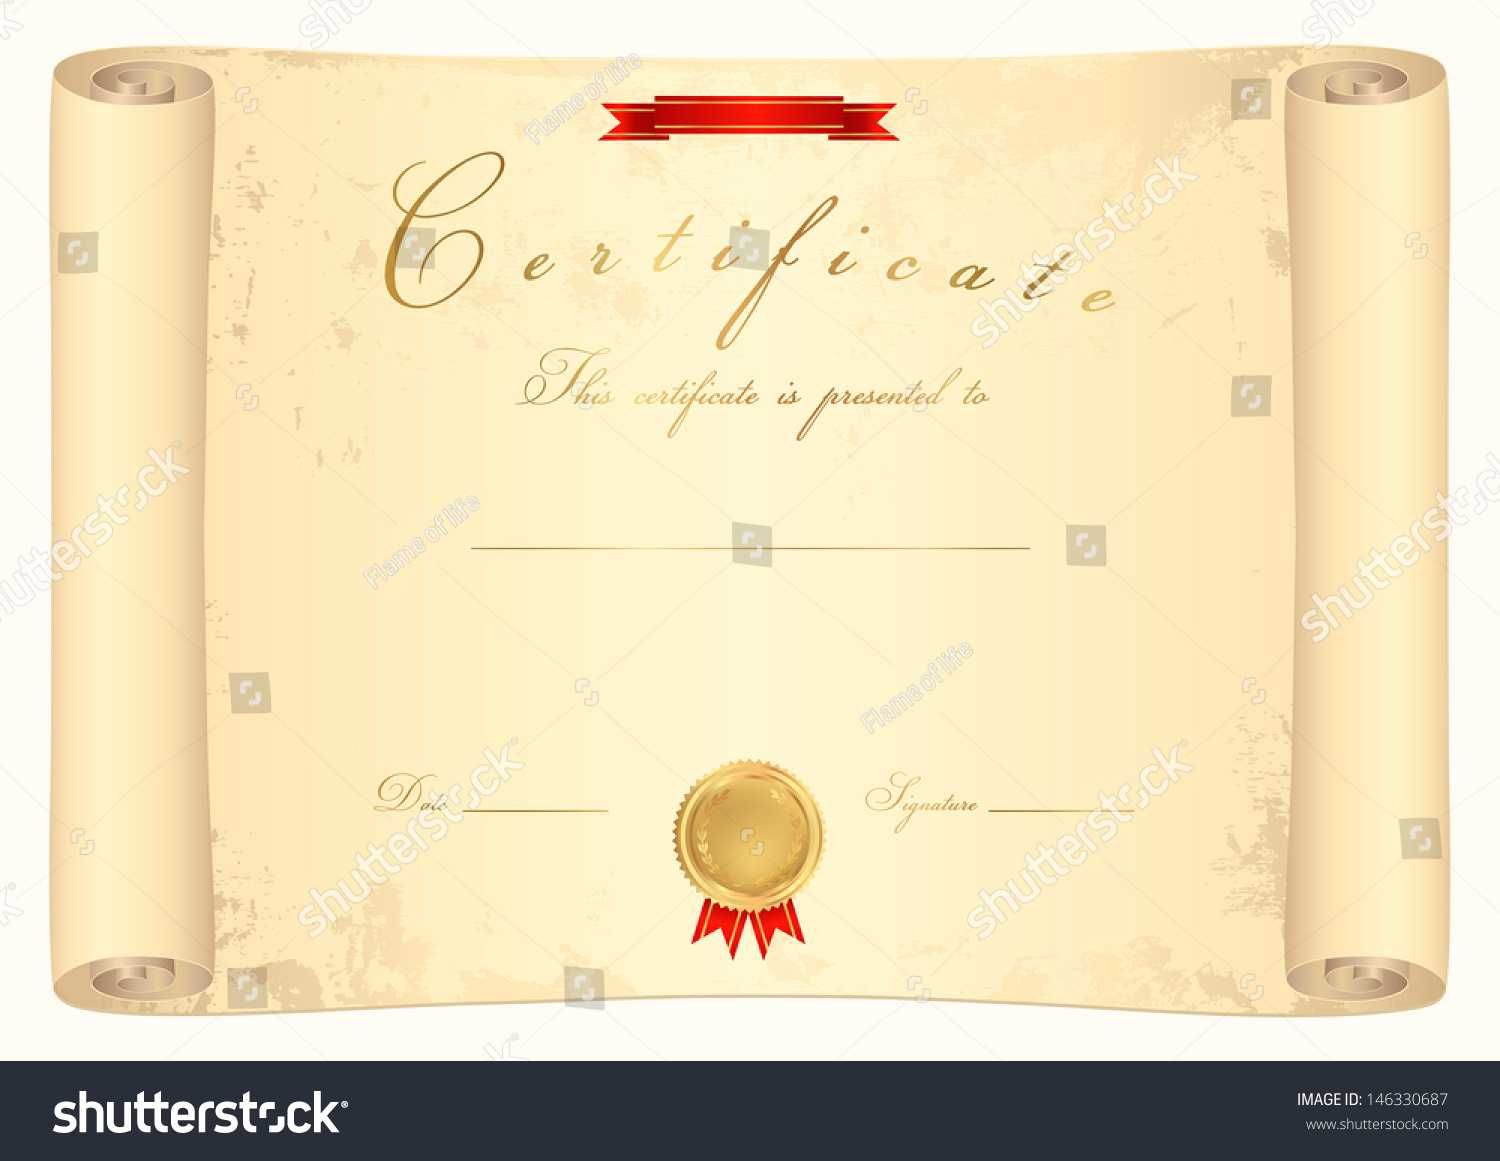 Scroll Certificate Completion Template Sample Background Regarding Scroll Certificate Templates